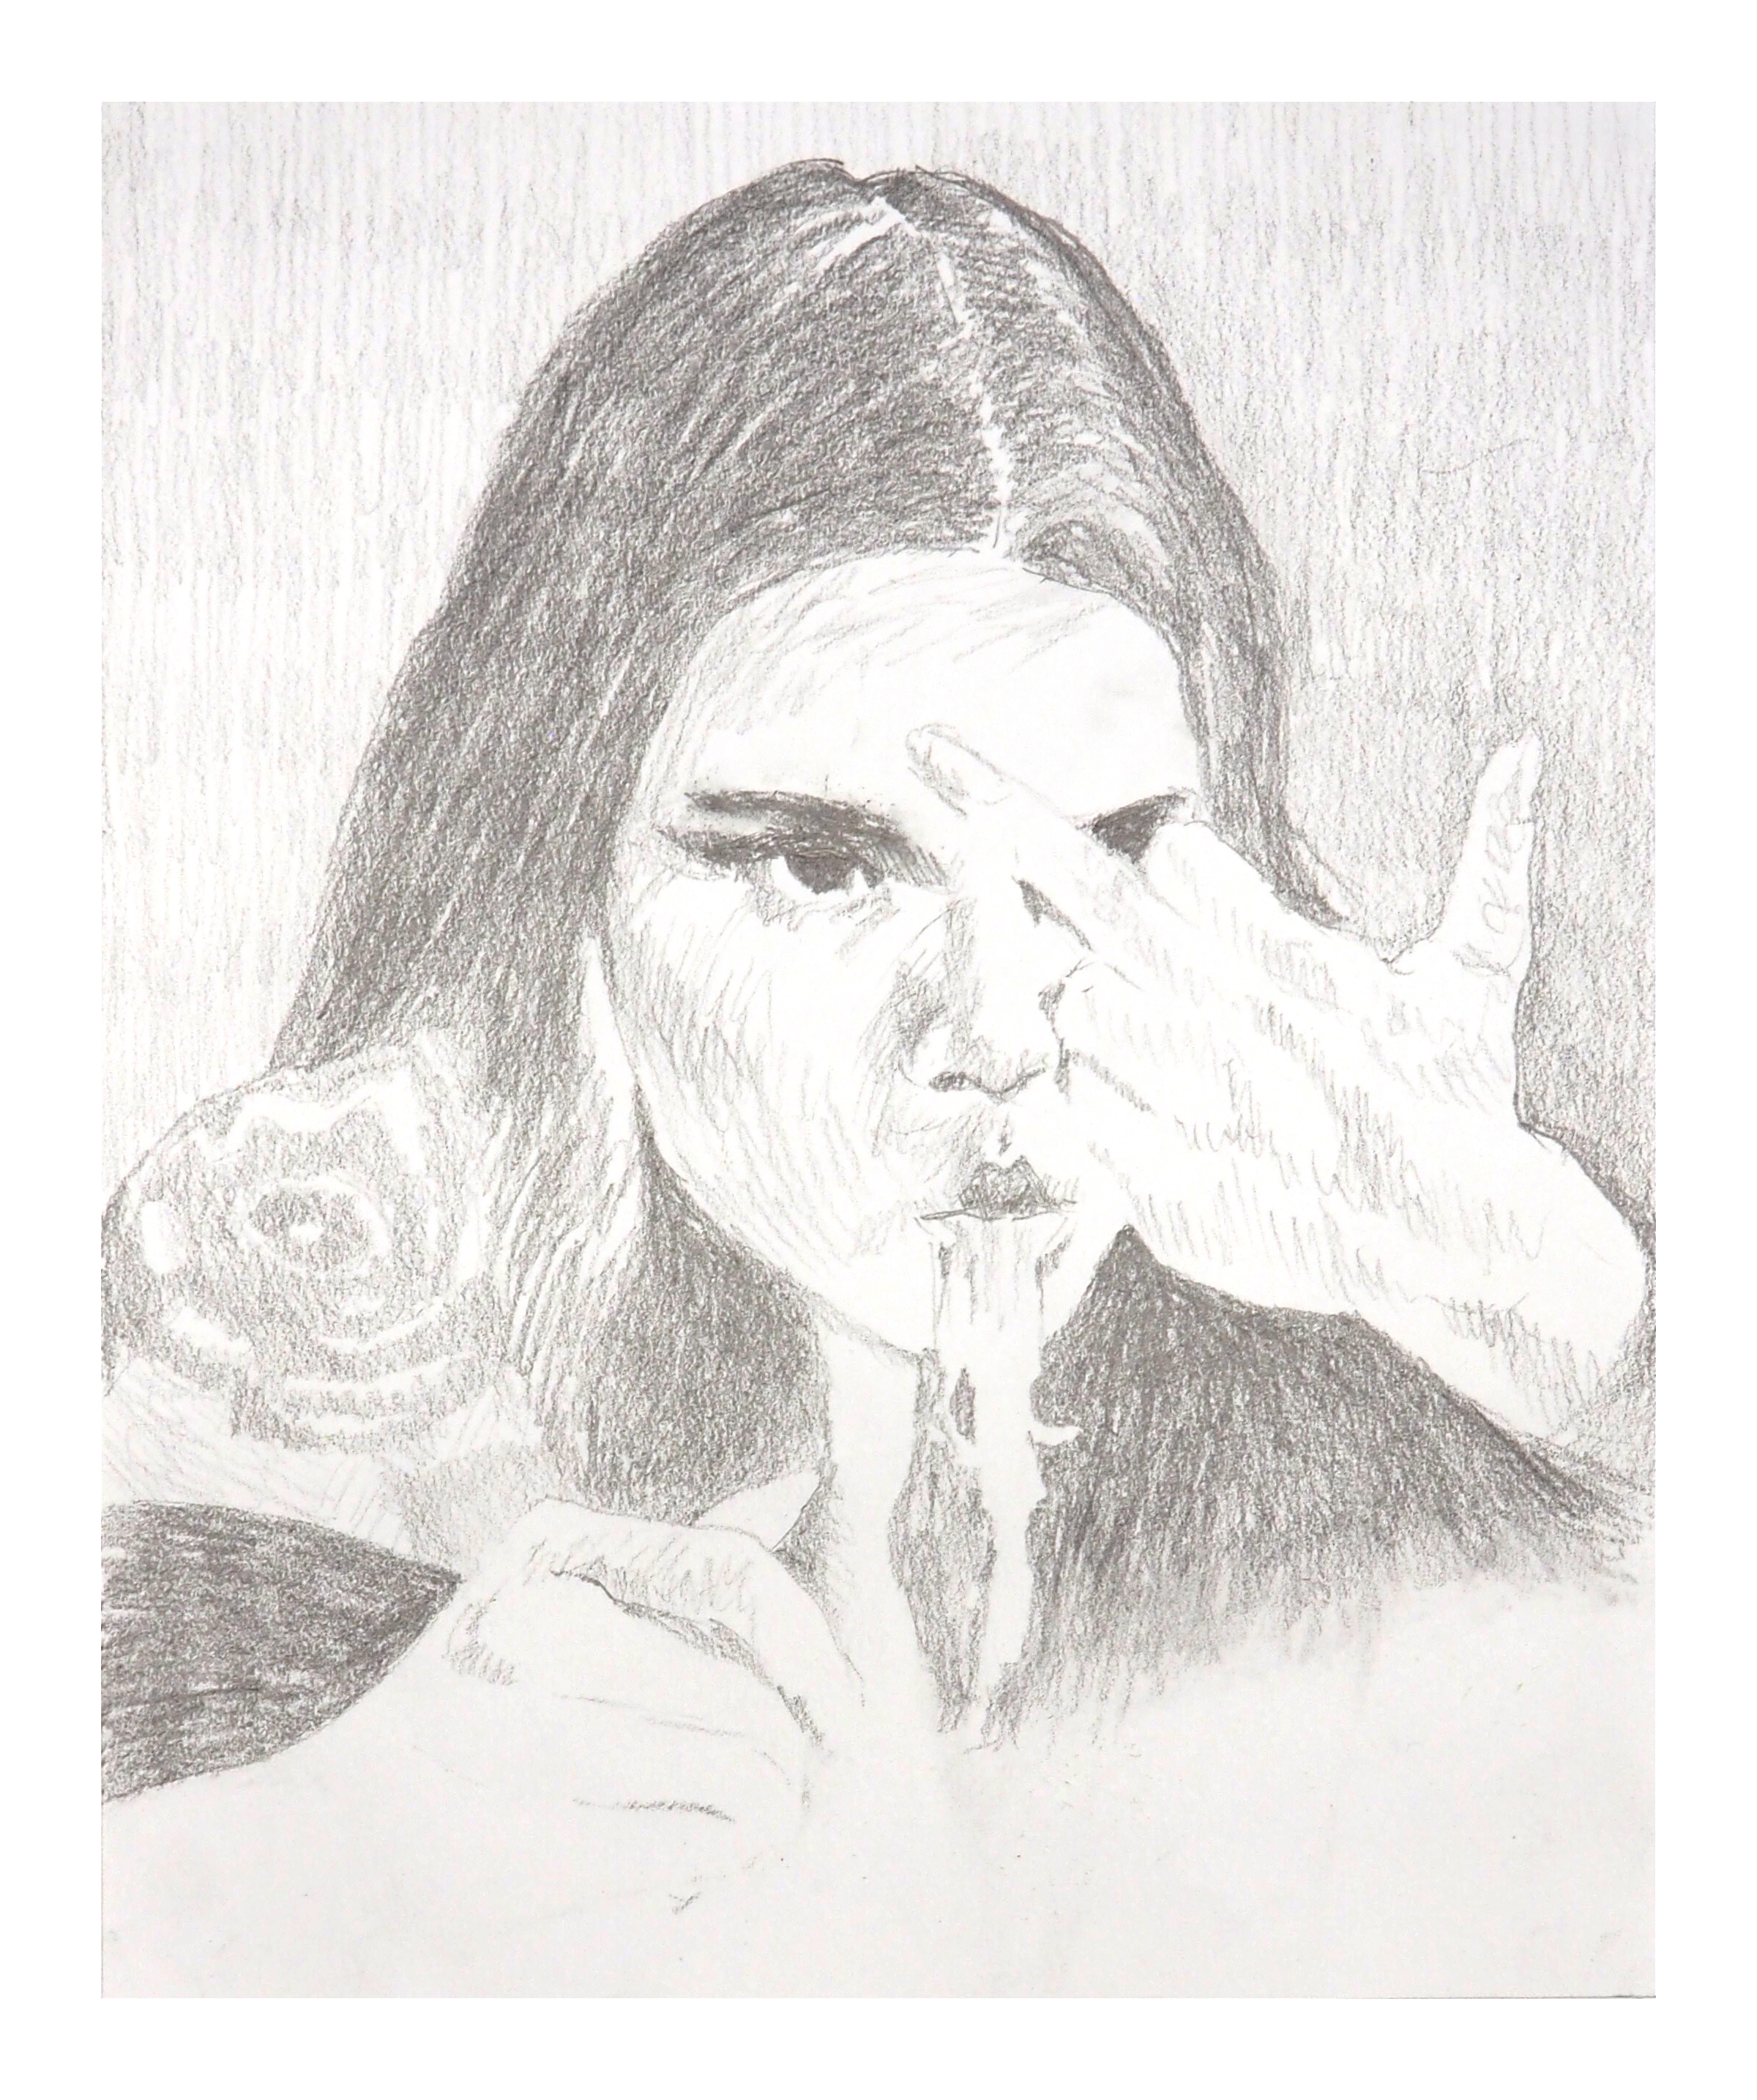 UNTITLED Graphite on Paper